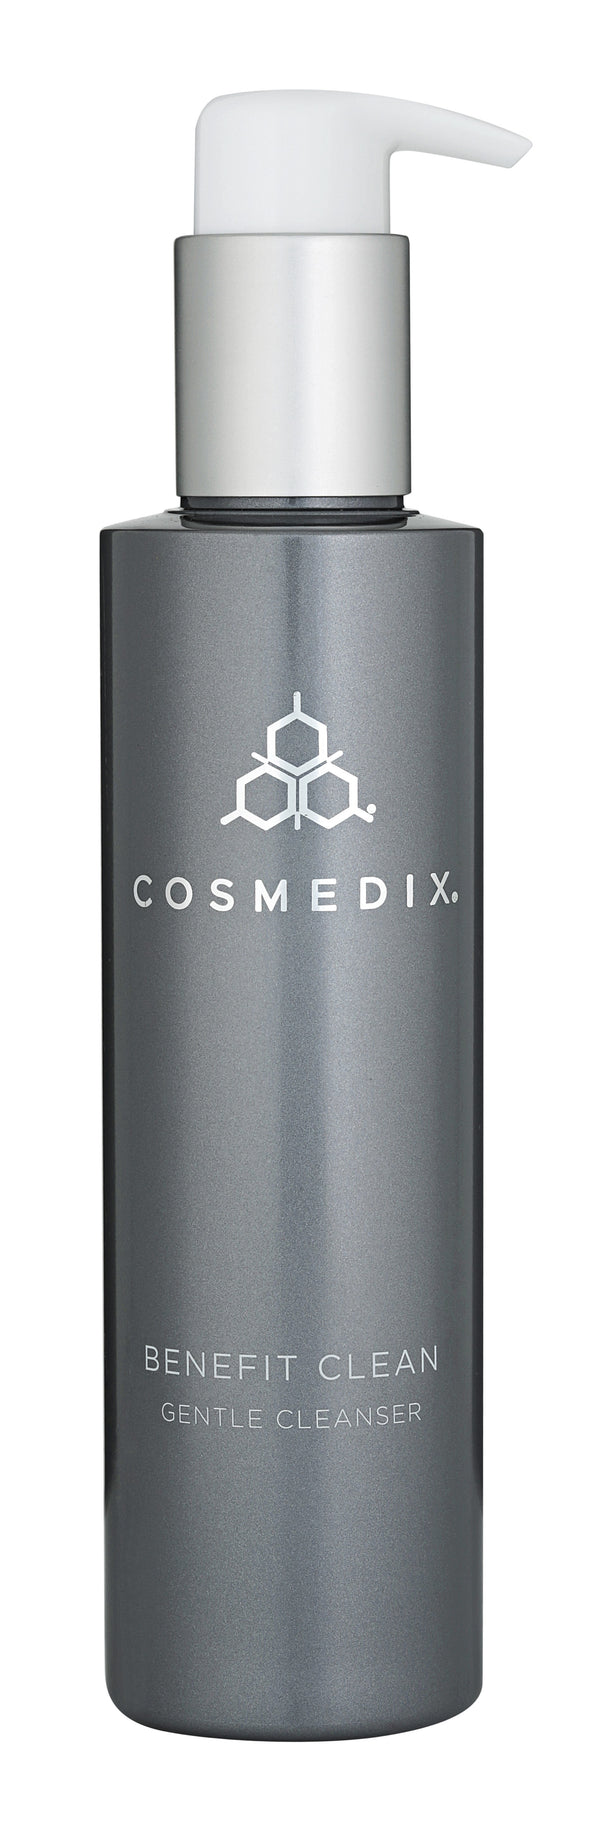 Cosmedix Benefit Clean